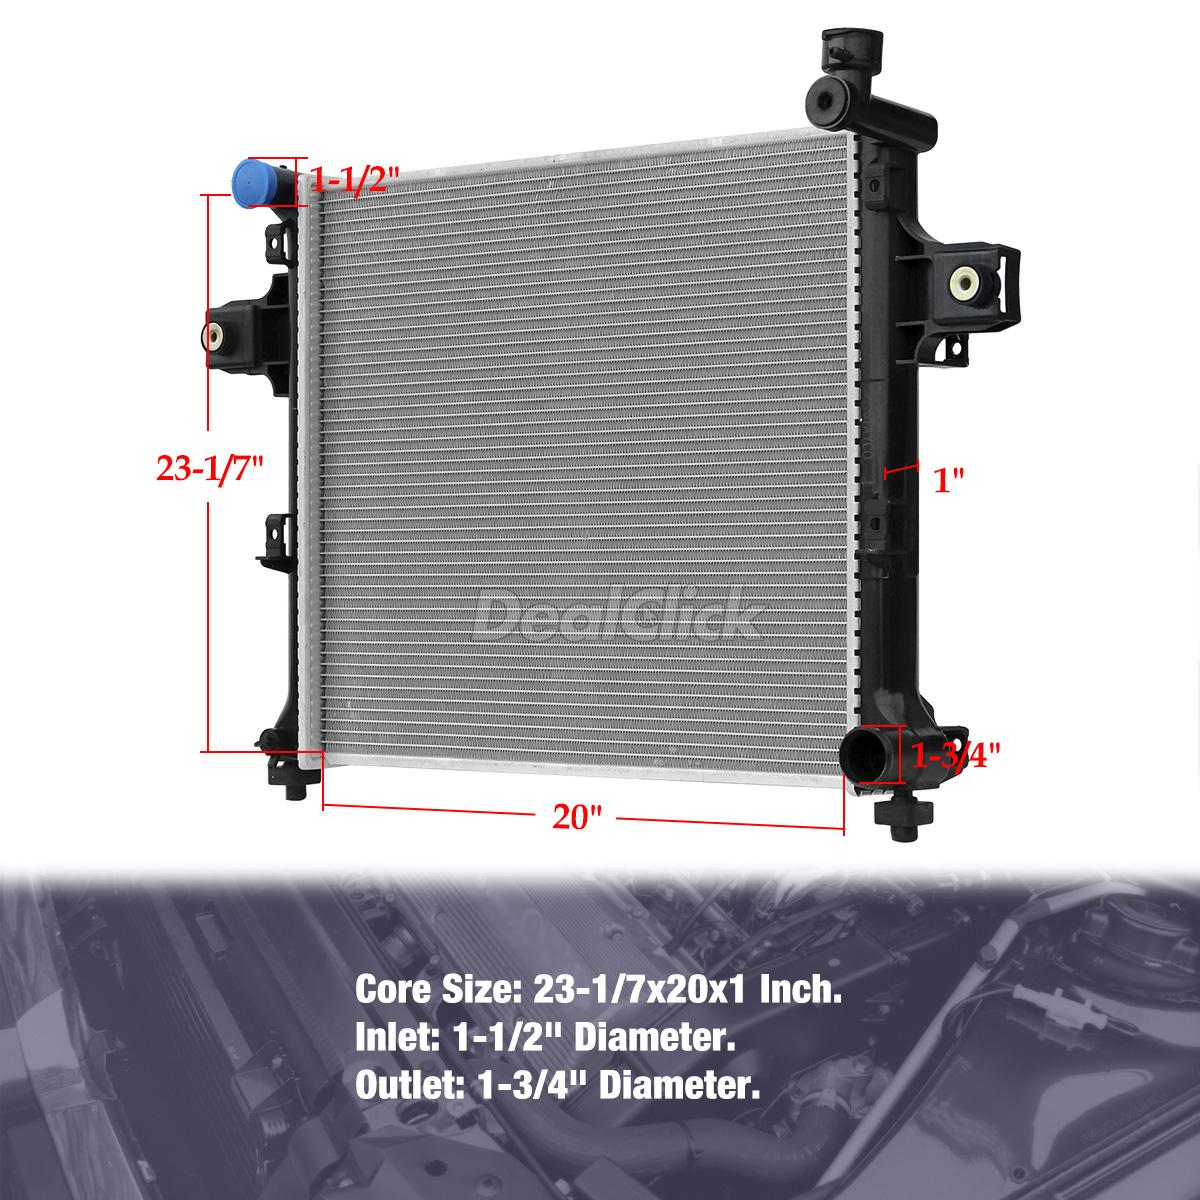 2009 Jeep Commander Exterior: STAYCO Radiator 2839 For 2006-2009 JEEP COMMANDER